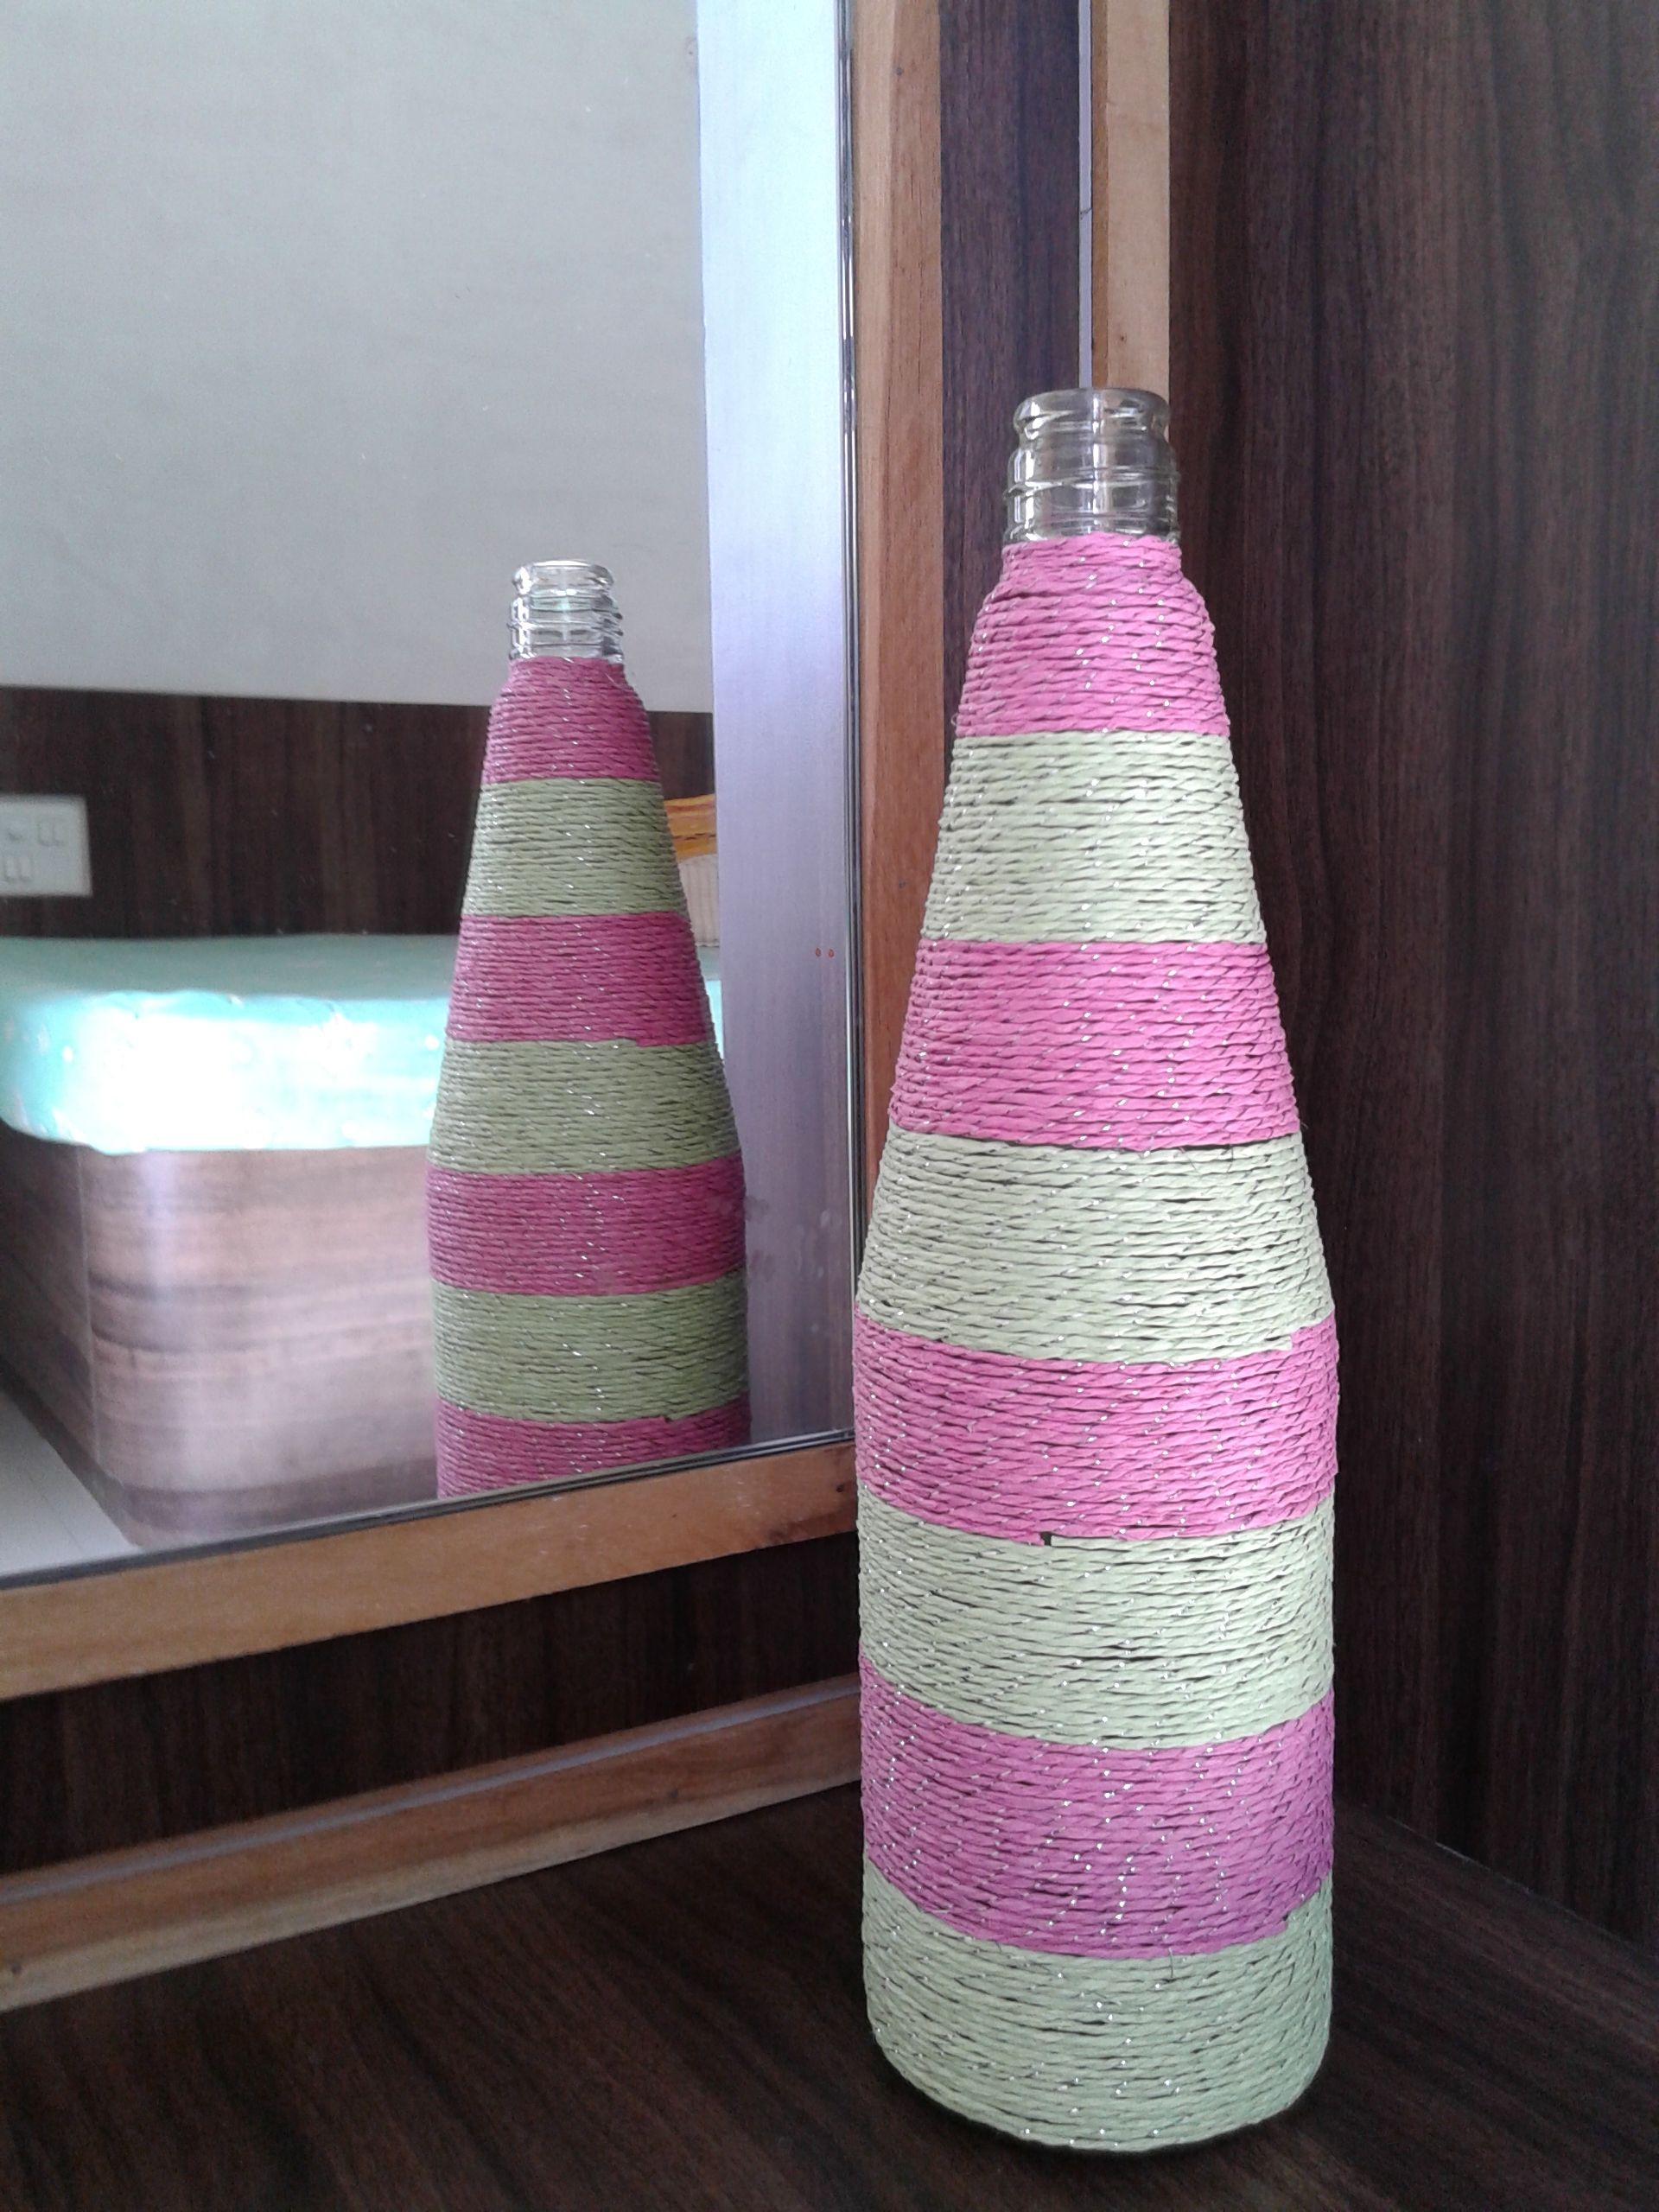 Paper Thread Glass Bottle Best Out Of Waste Decorative Vase Bottles Decoration Vases Decor Best Out Of Waste